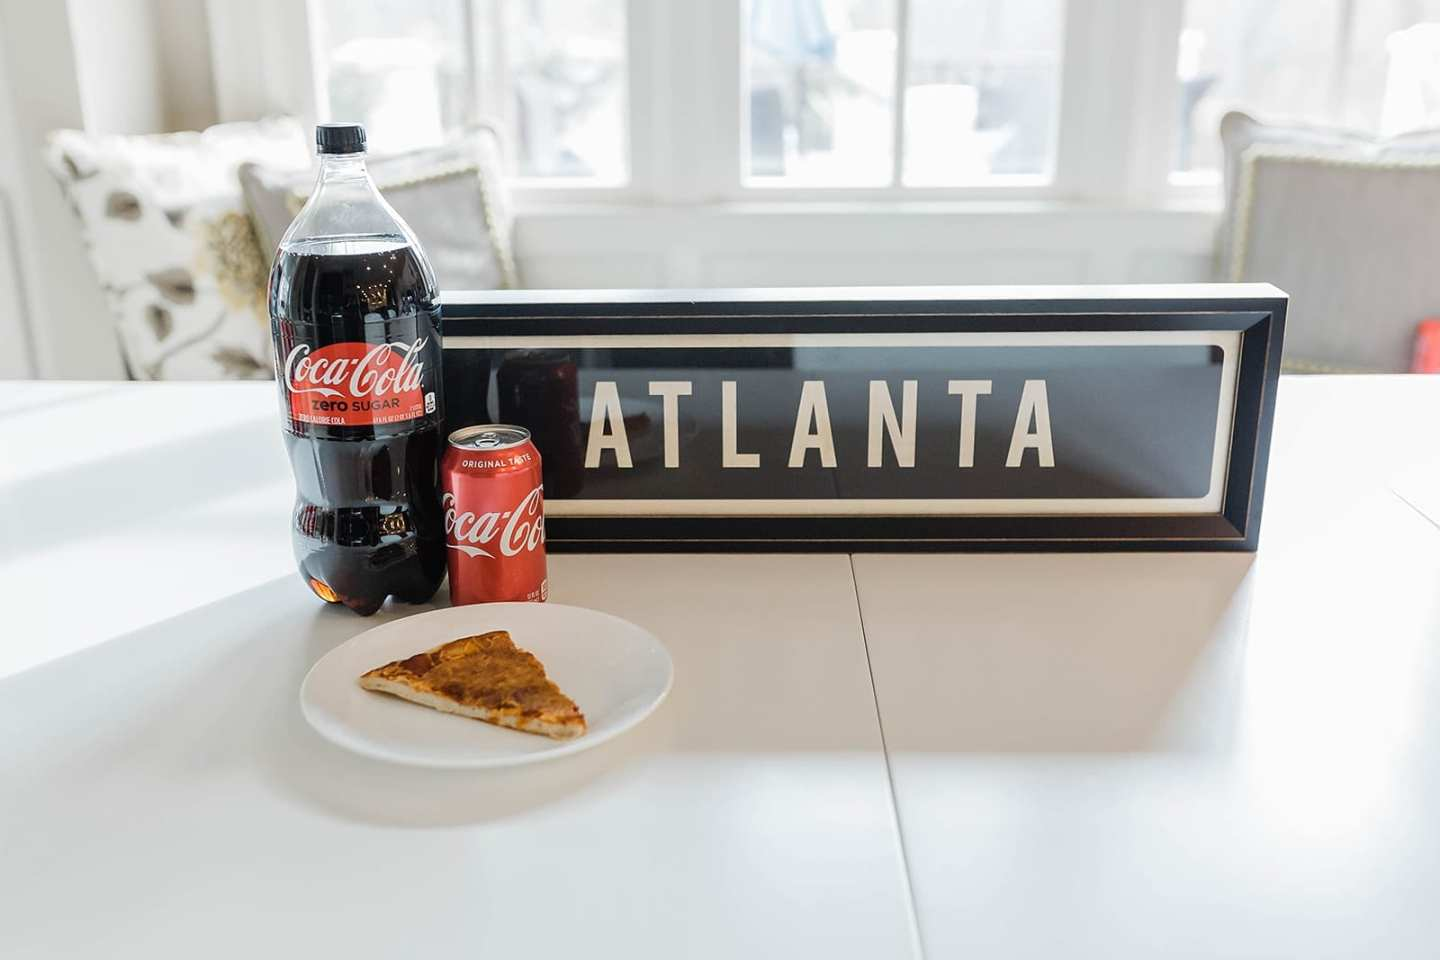 Atlanta based coke and homemade pizza? Yes please! Throw a fun Super Bowl party and have our guests make their own pizza. Use some paper plates and you've got the easiest party to set up for, serve and clean up after!